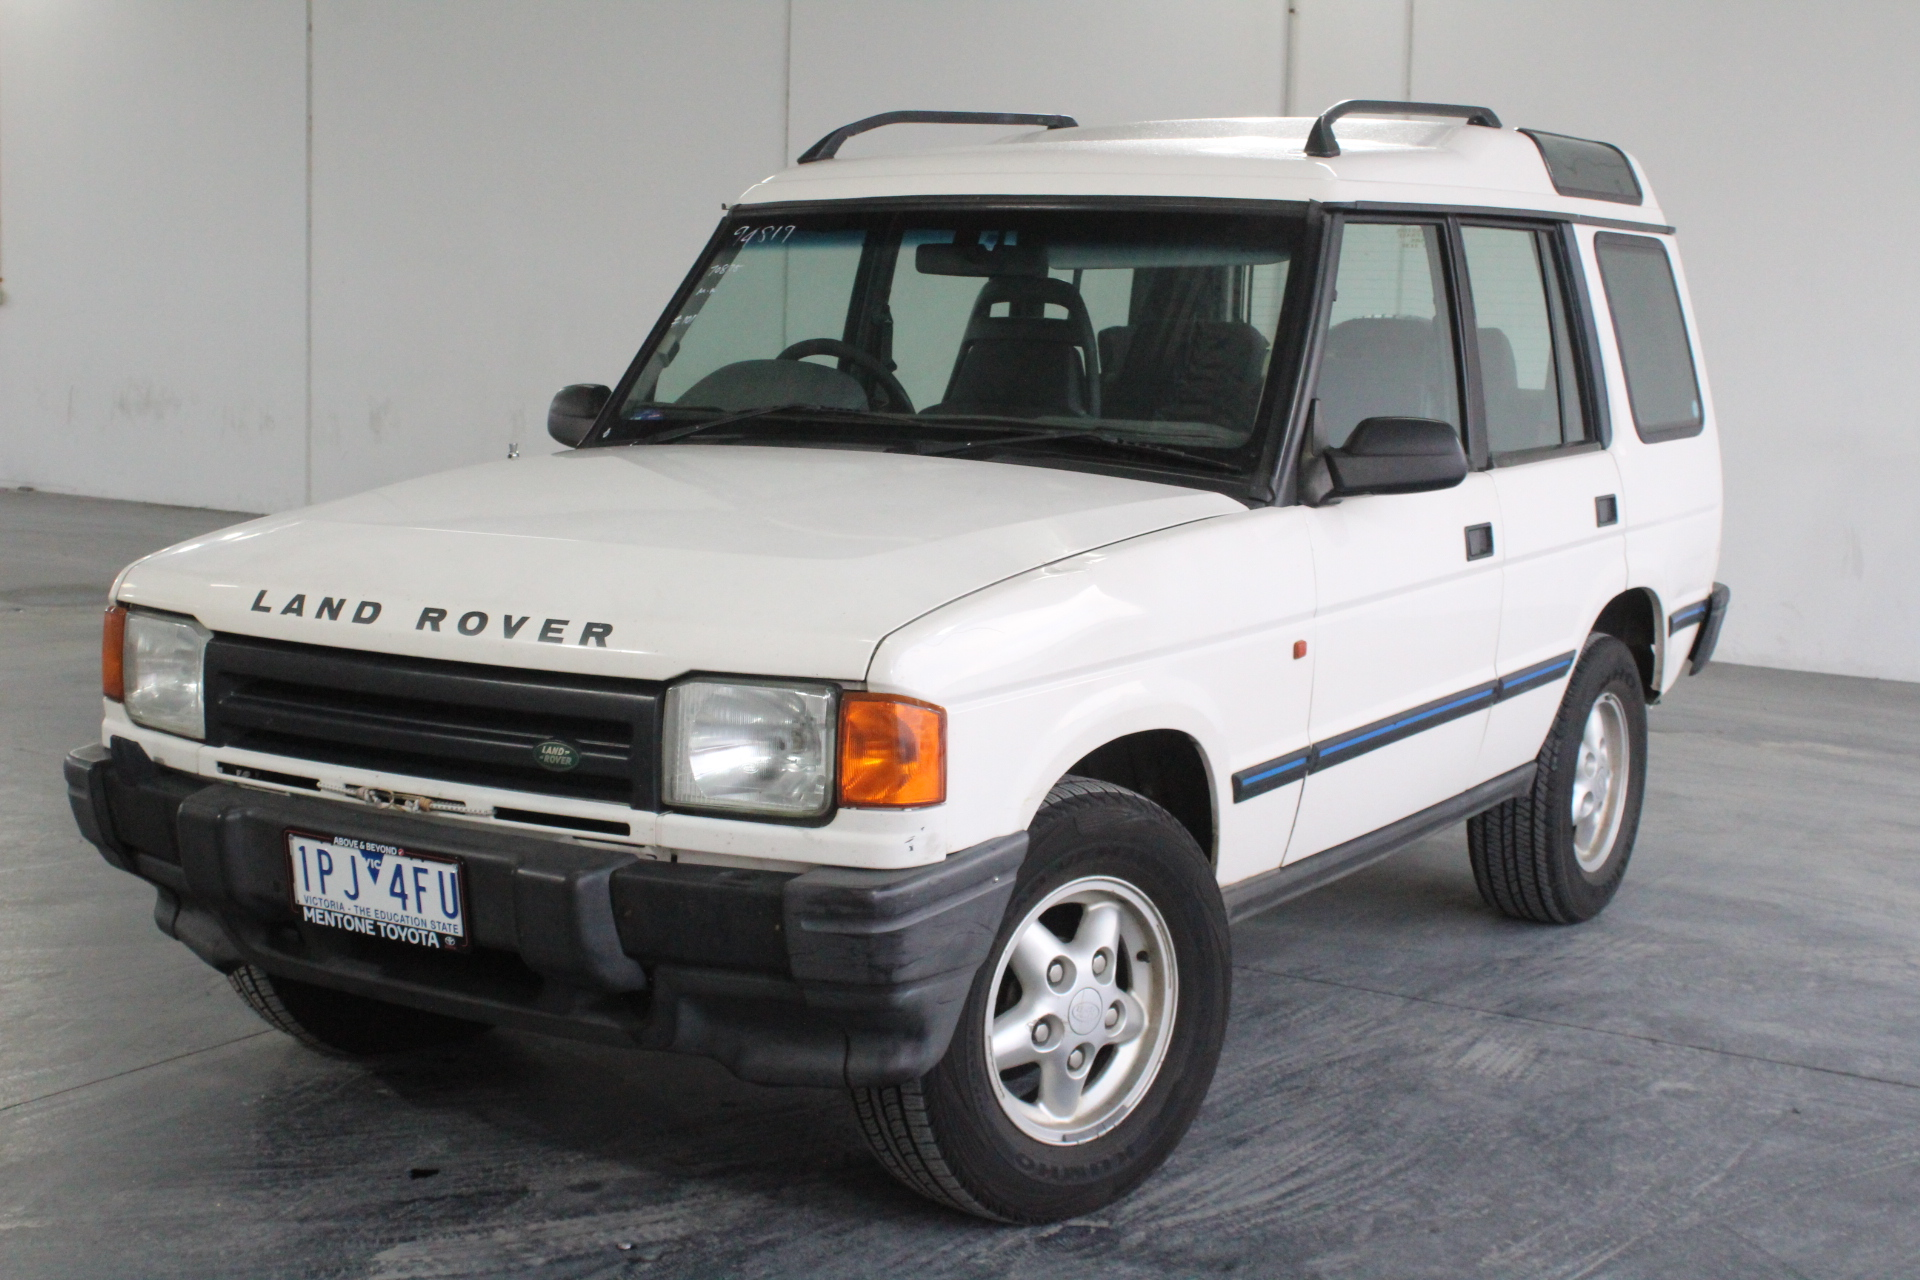 1996 Land Rover Discovery Tdi (4x4) Turbo Diesel Automatic Wagon